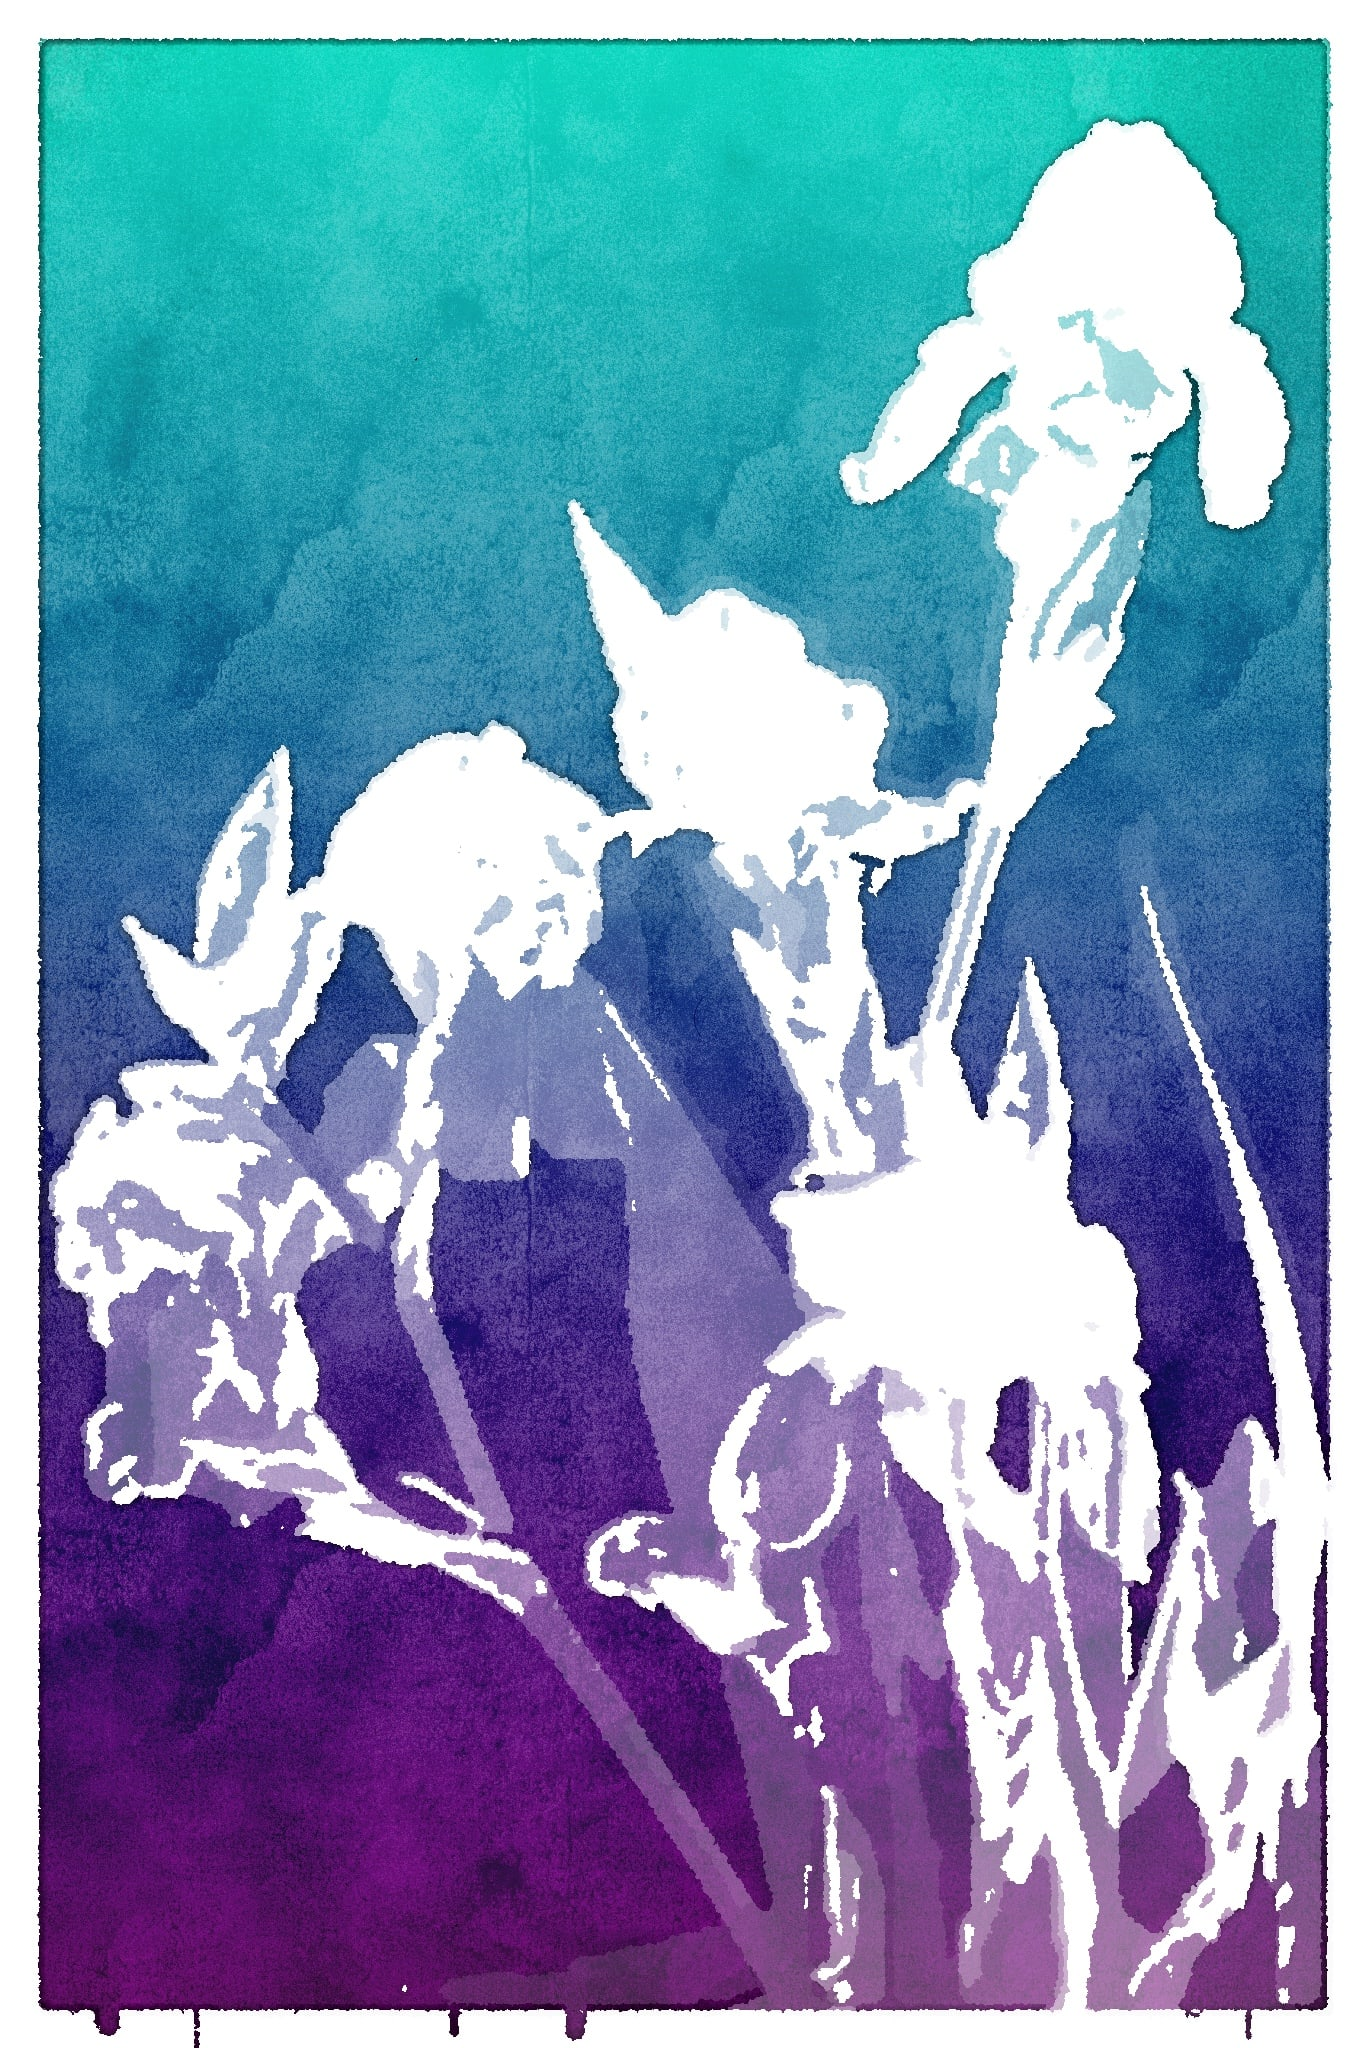 A photo of irises processed by Popsicolor. Makes it really easy to see just the big shapes!